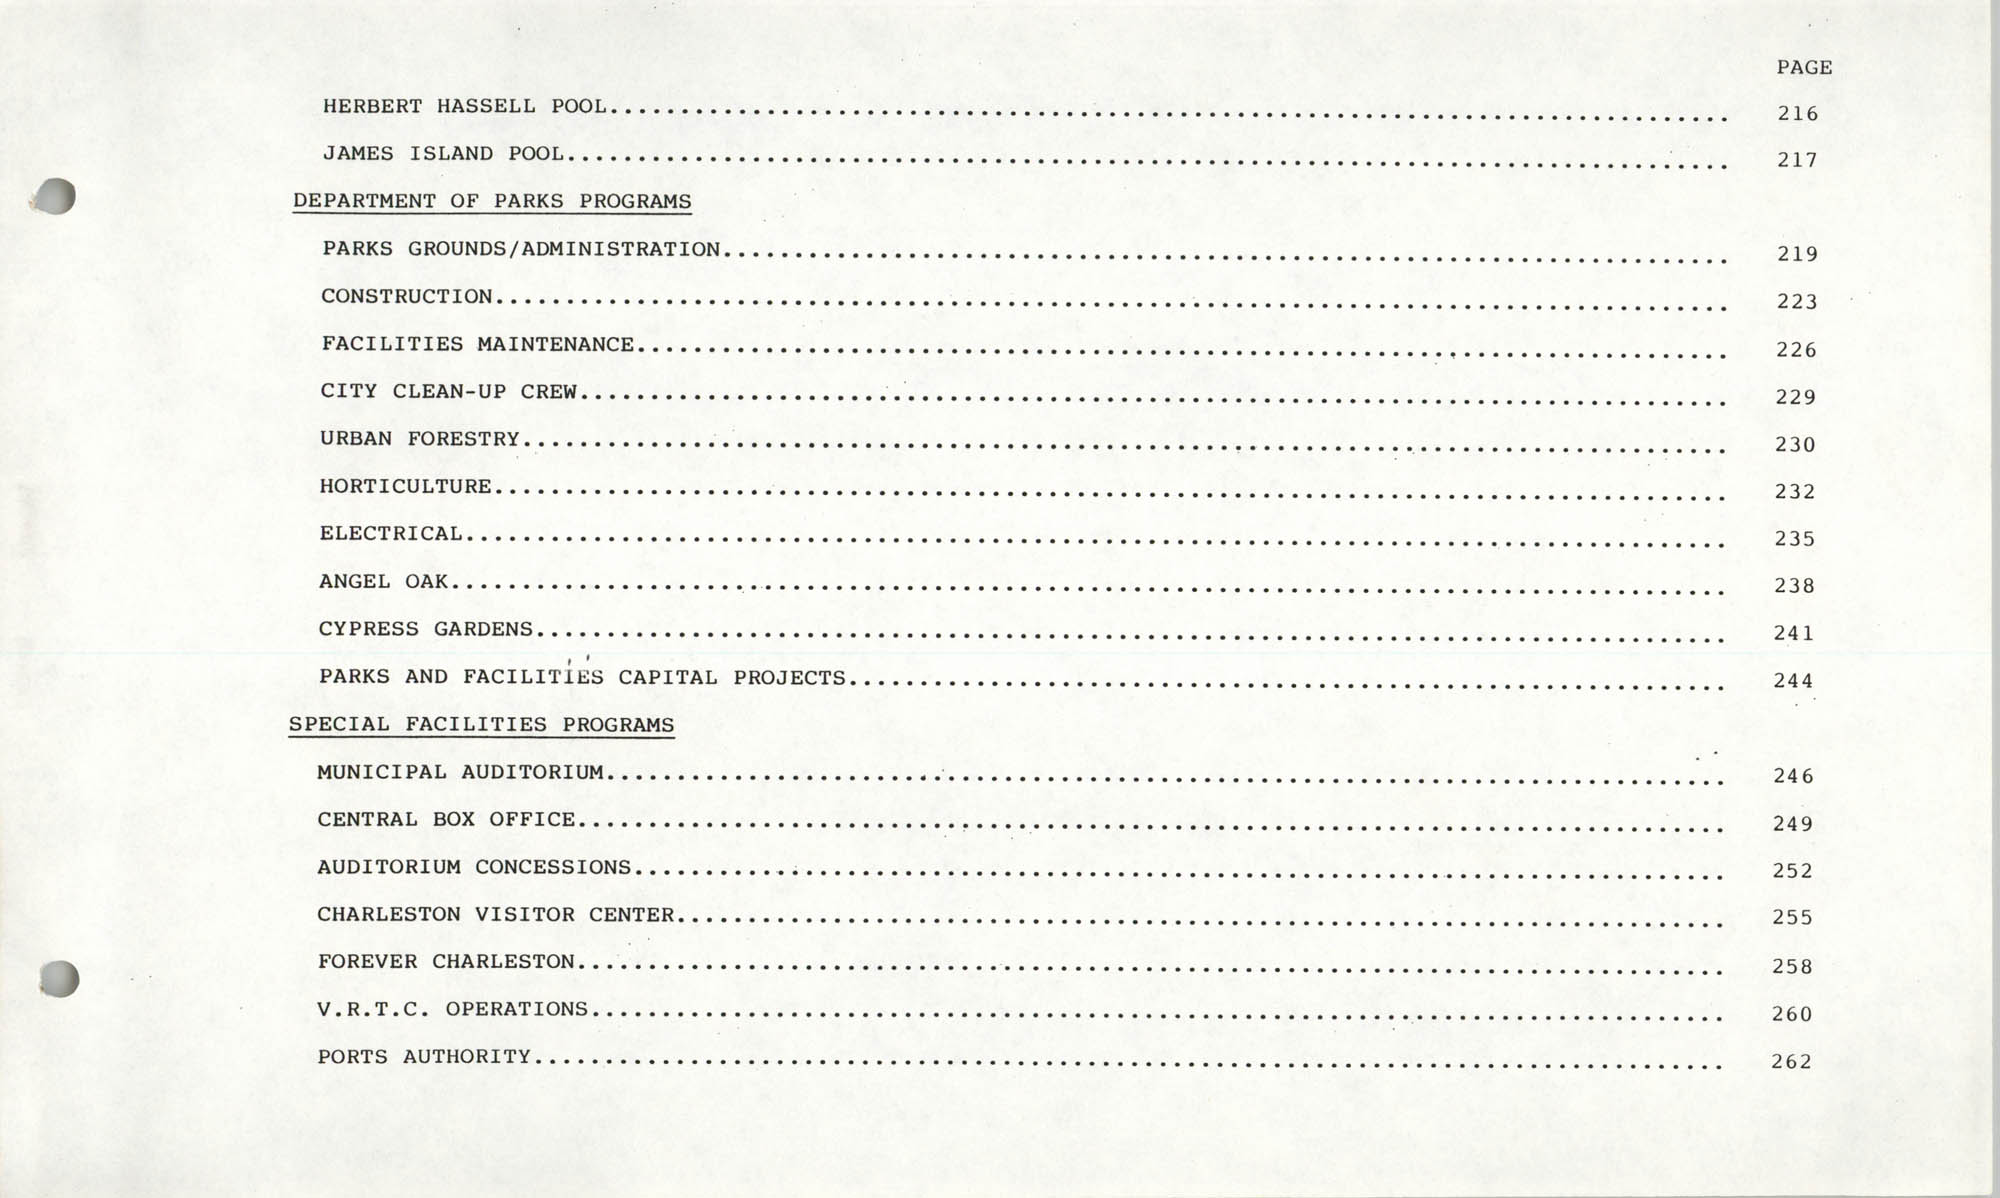 The City Council of Charleston, South Carolina, 1993 Budget, Table of Contents Page 6